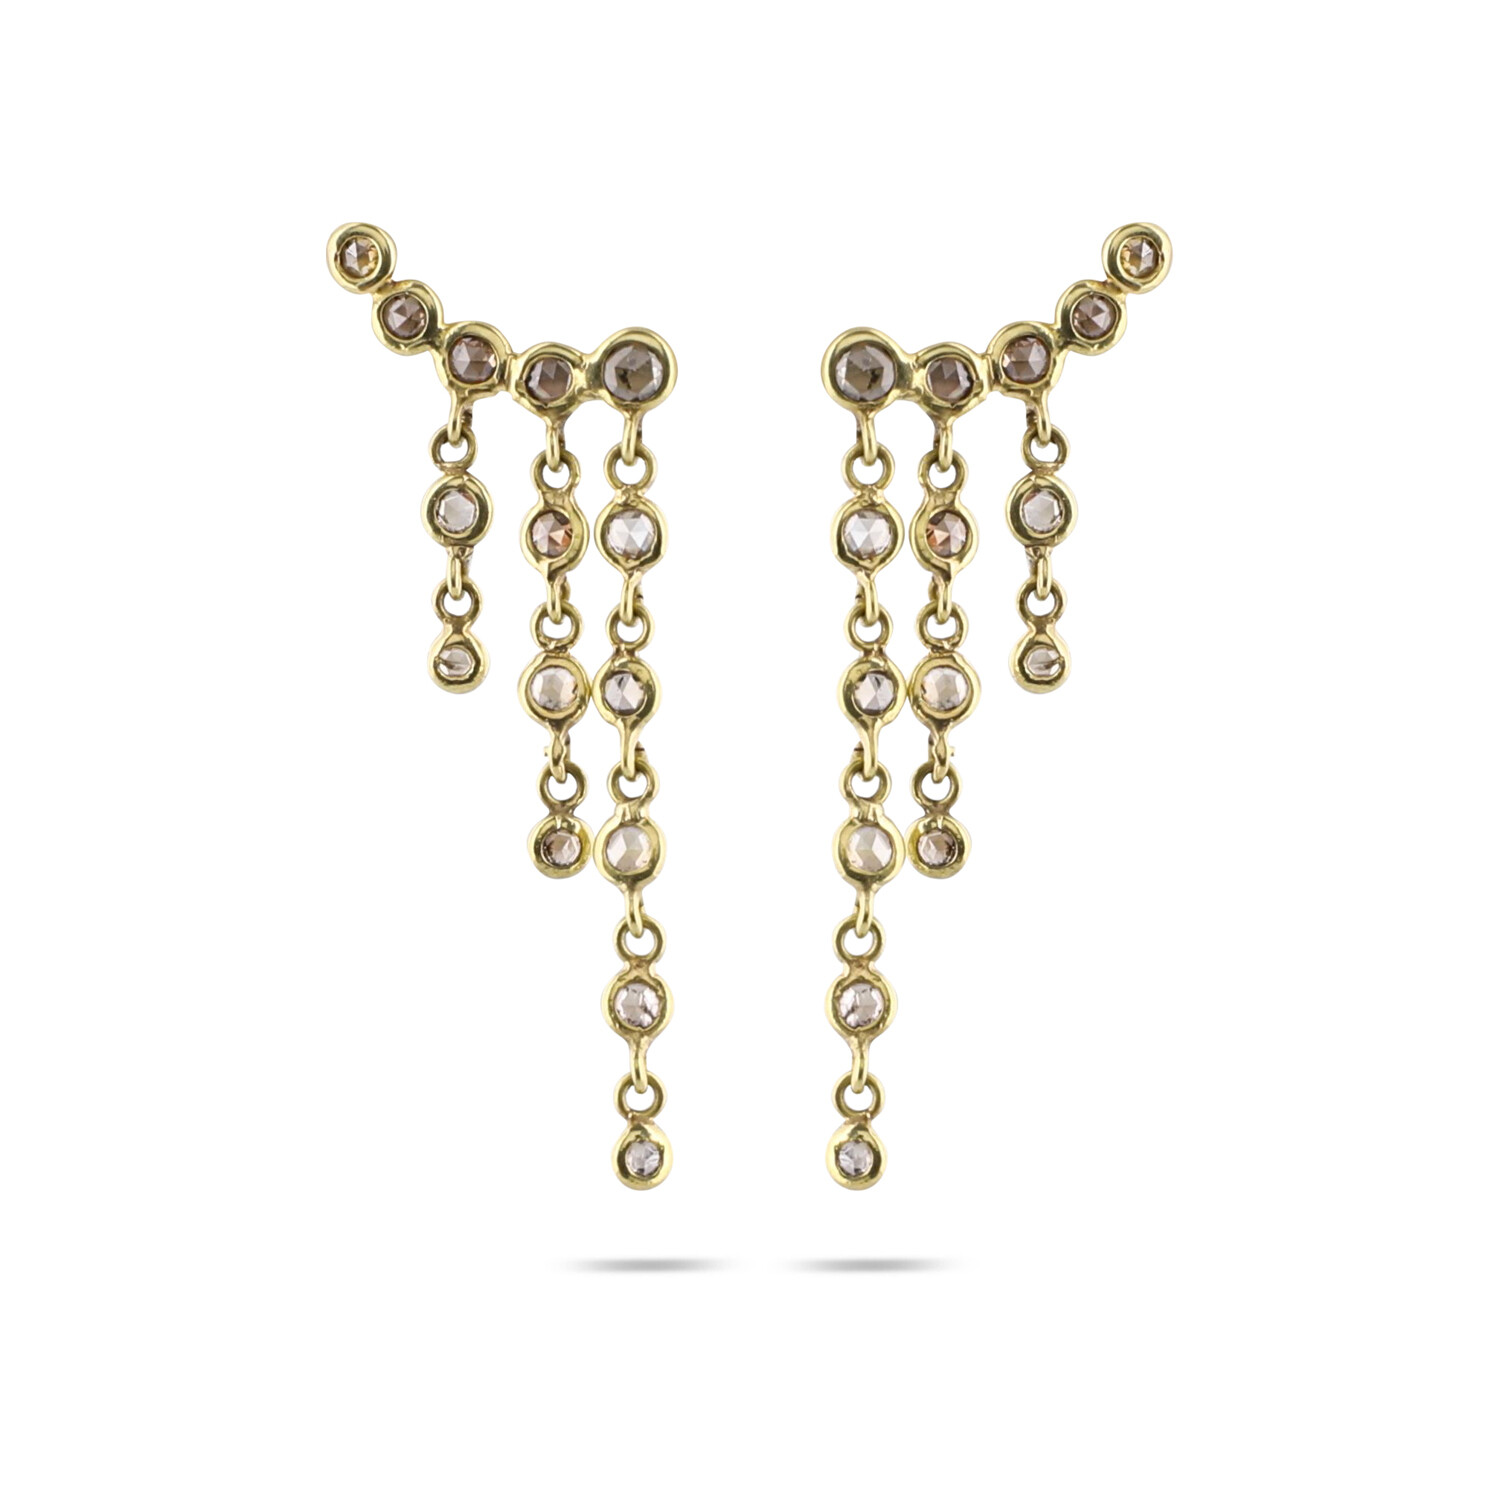 Diamond Studs with 3 attached Chains